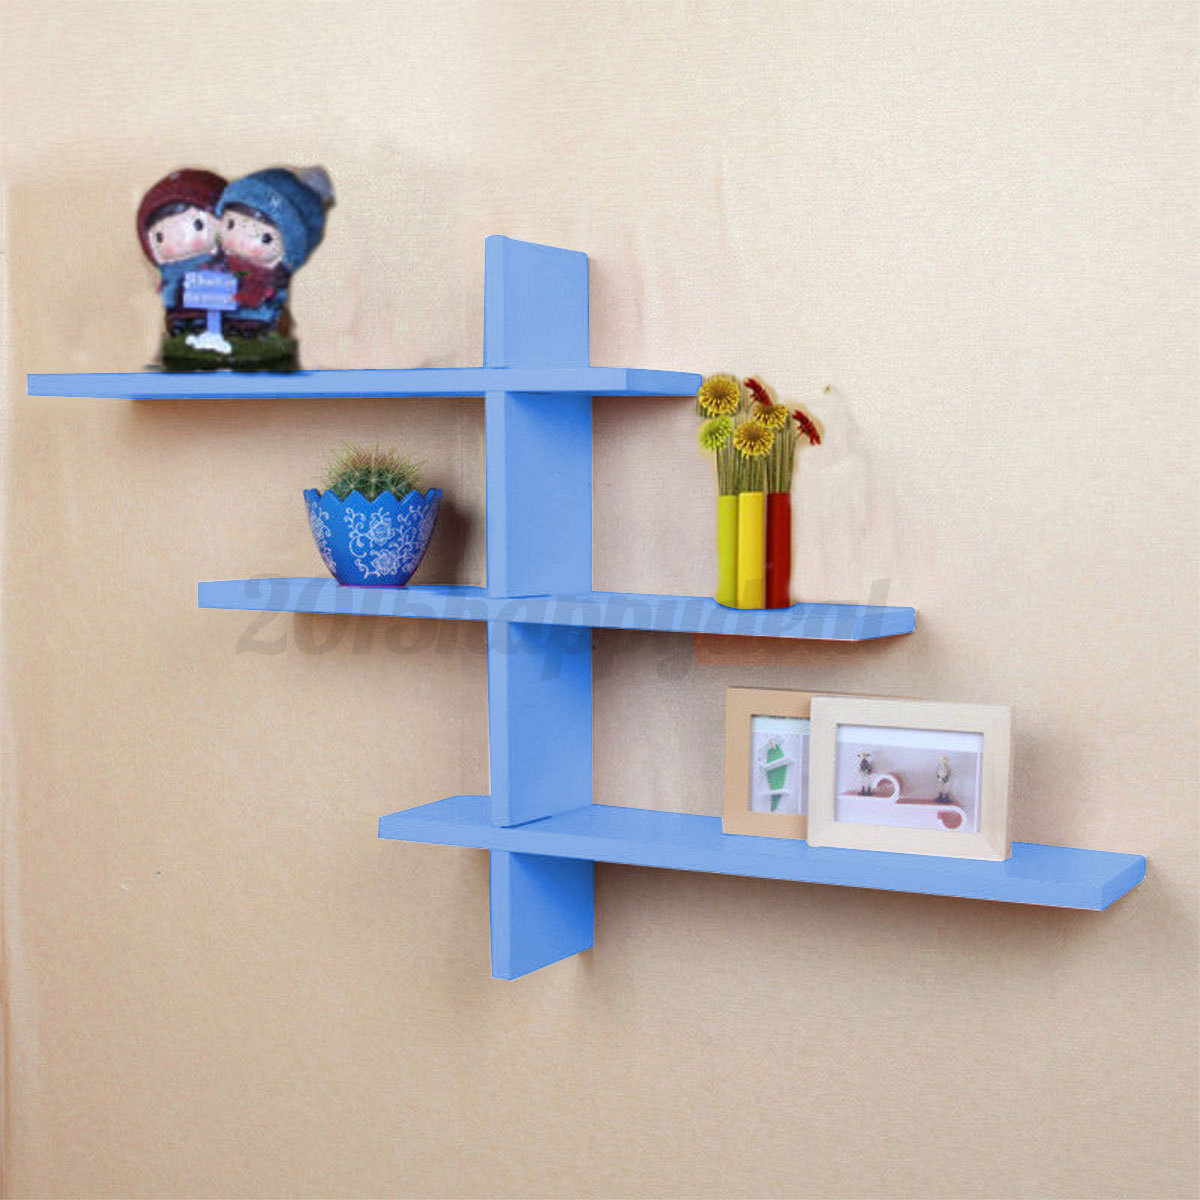 Heavy Duty Wall Shelving : Heavy duty t shape floating wall mount shelves book dvd